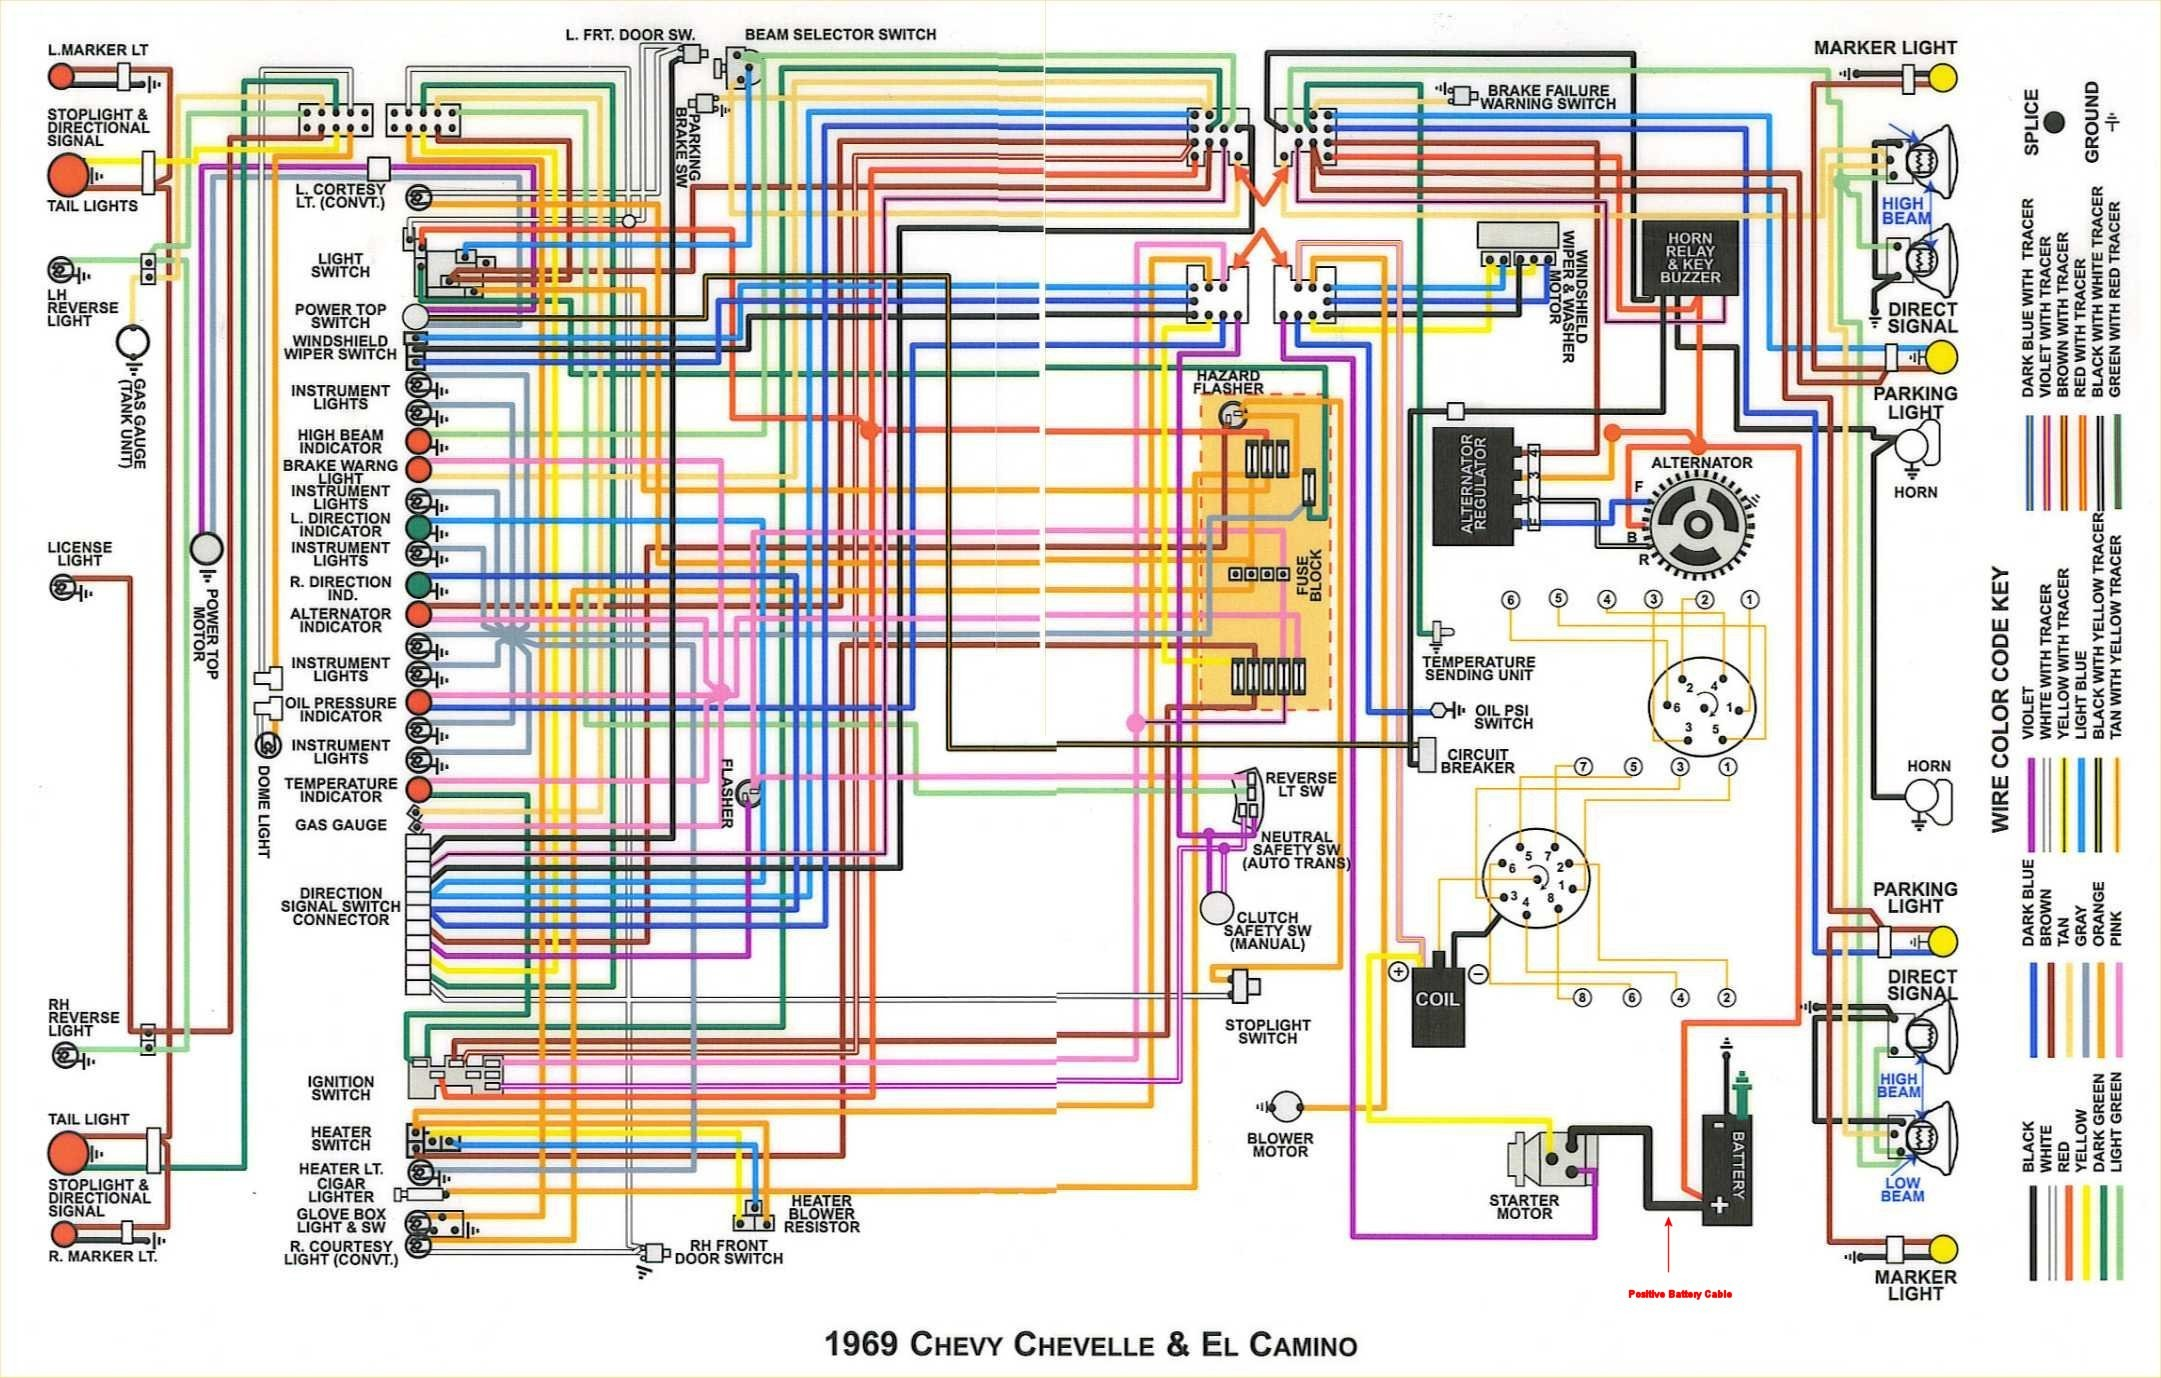 1971 Camaro Horn Wiring Diagram Content Resource Of 1977 Chevelle Harness Trusted Diagrams Rh Chicagoitalianrestaurants Com 1986